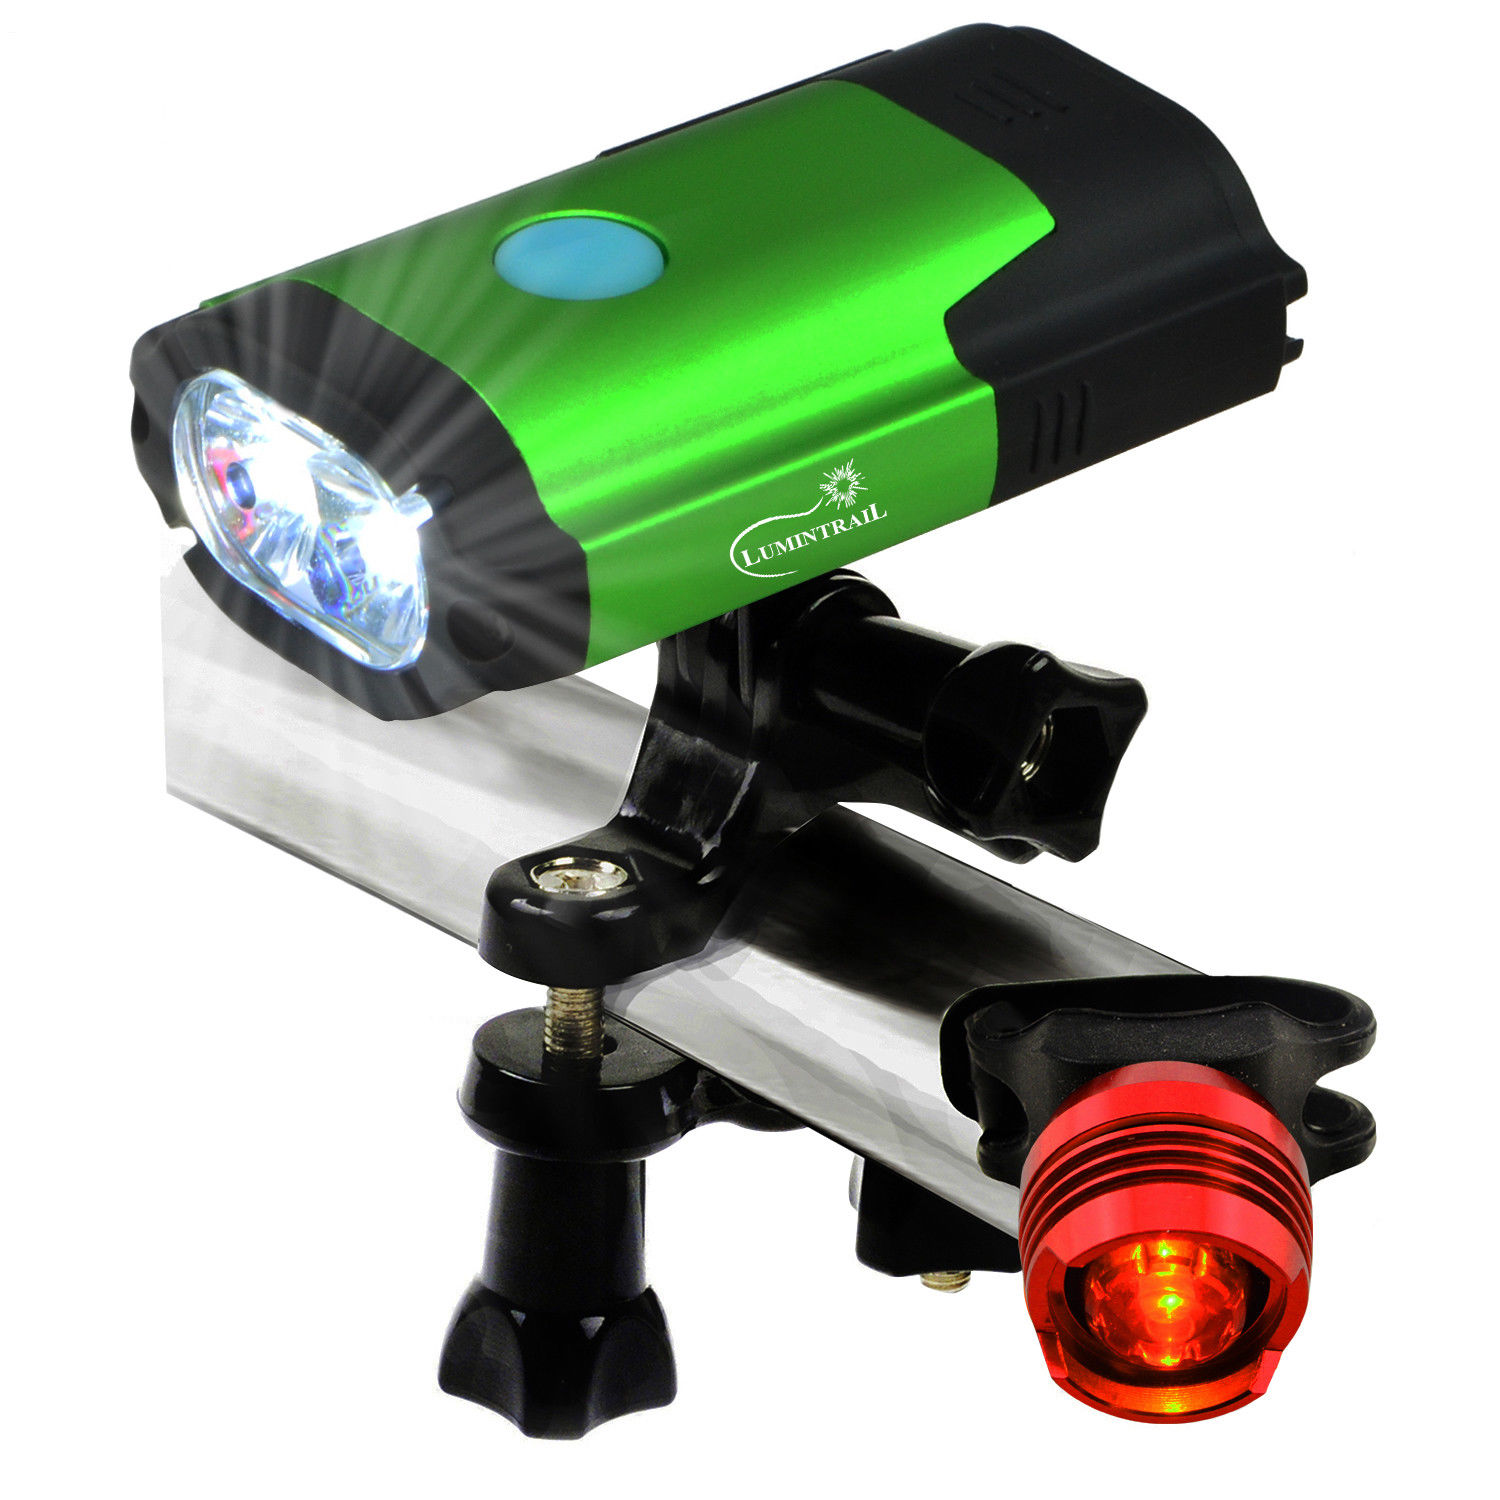 Lumintrail USB Rechargeable 800 Lumen LED Bike Light with Free Tail Light   Green